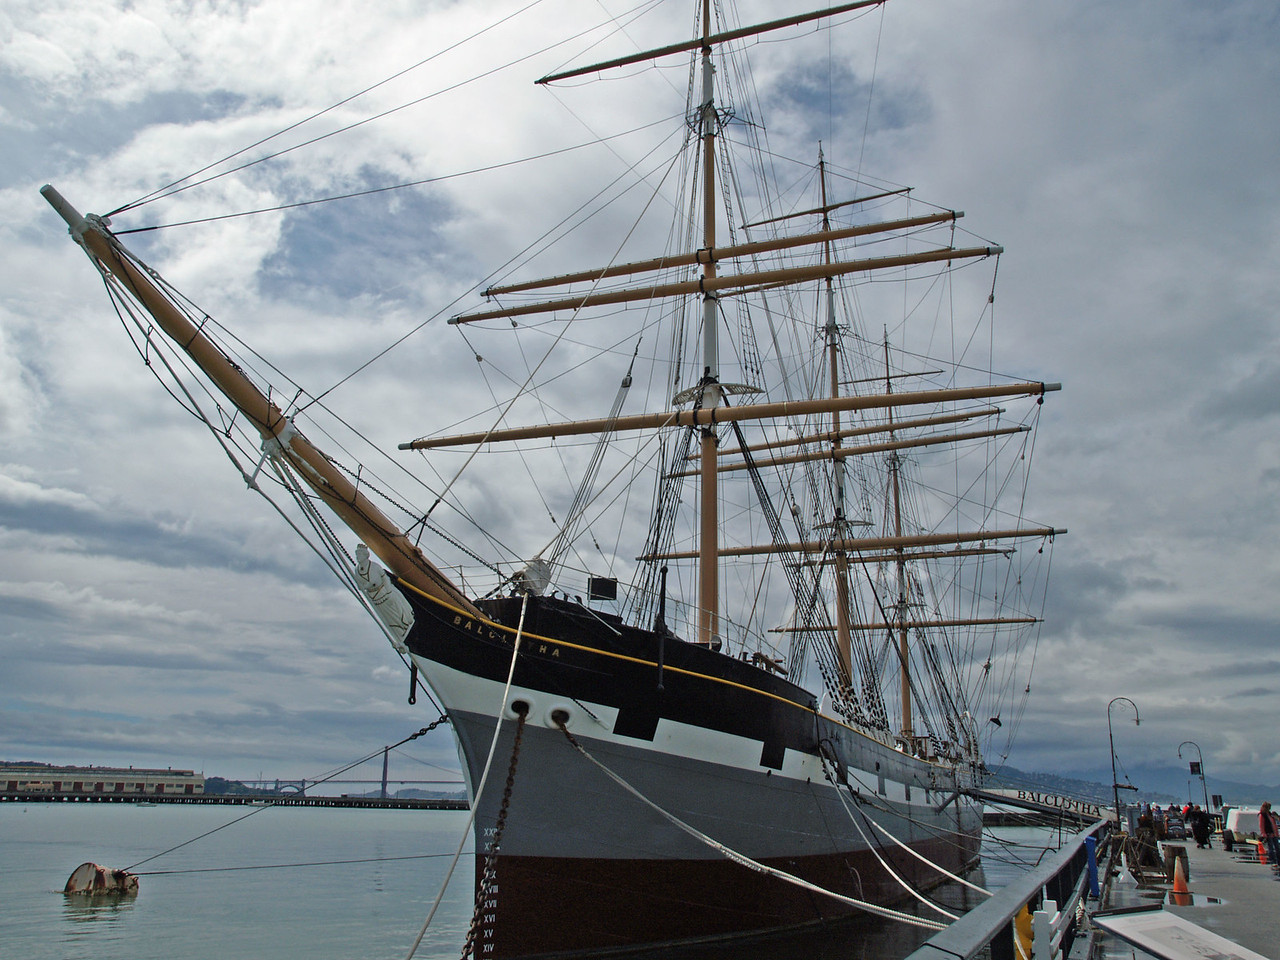 BALCLUTHA, is a steel-hulled full rigged ship that was built in 1886.